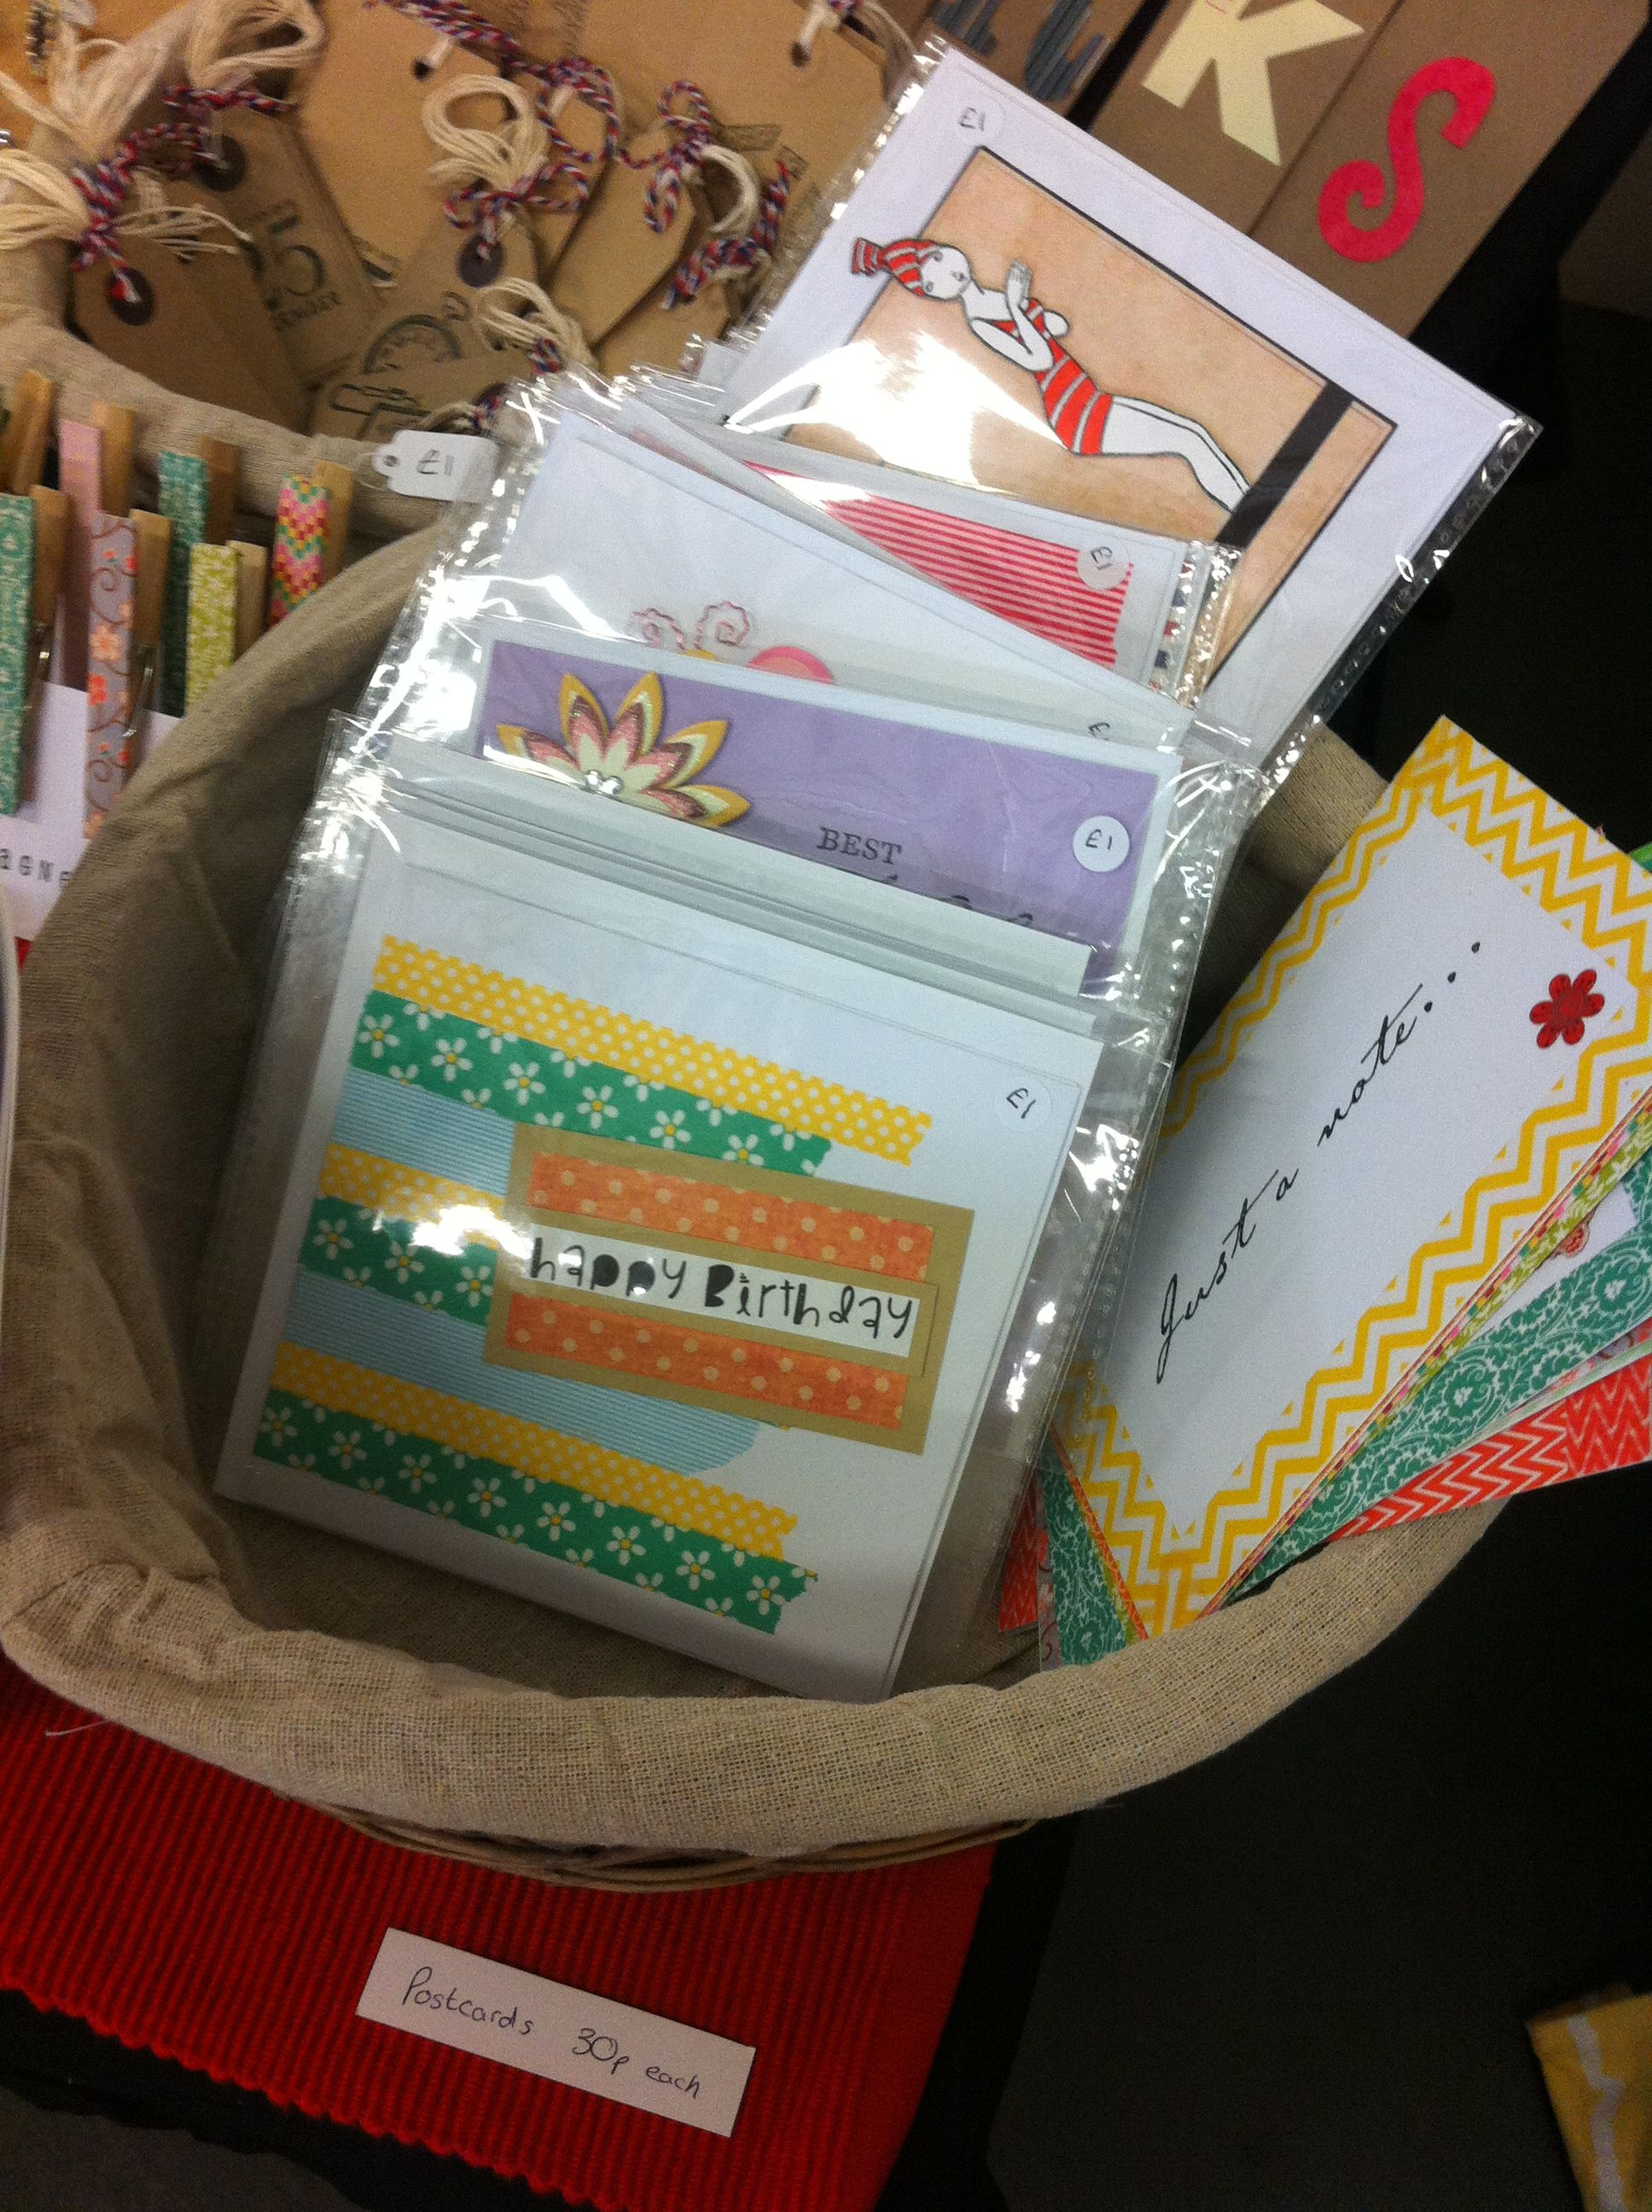 The Hidden Quirks Stall - handmade cards and postcards